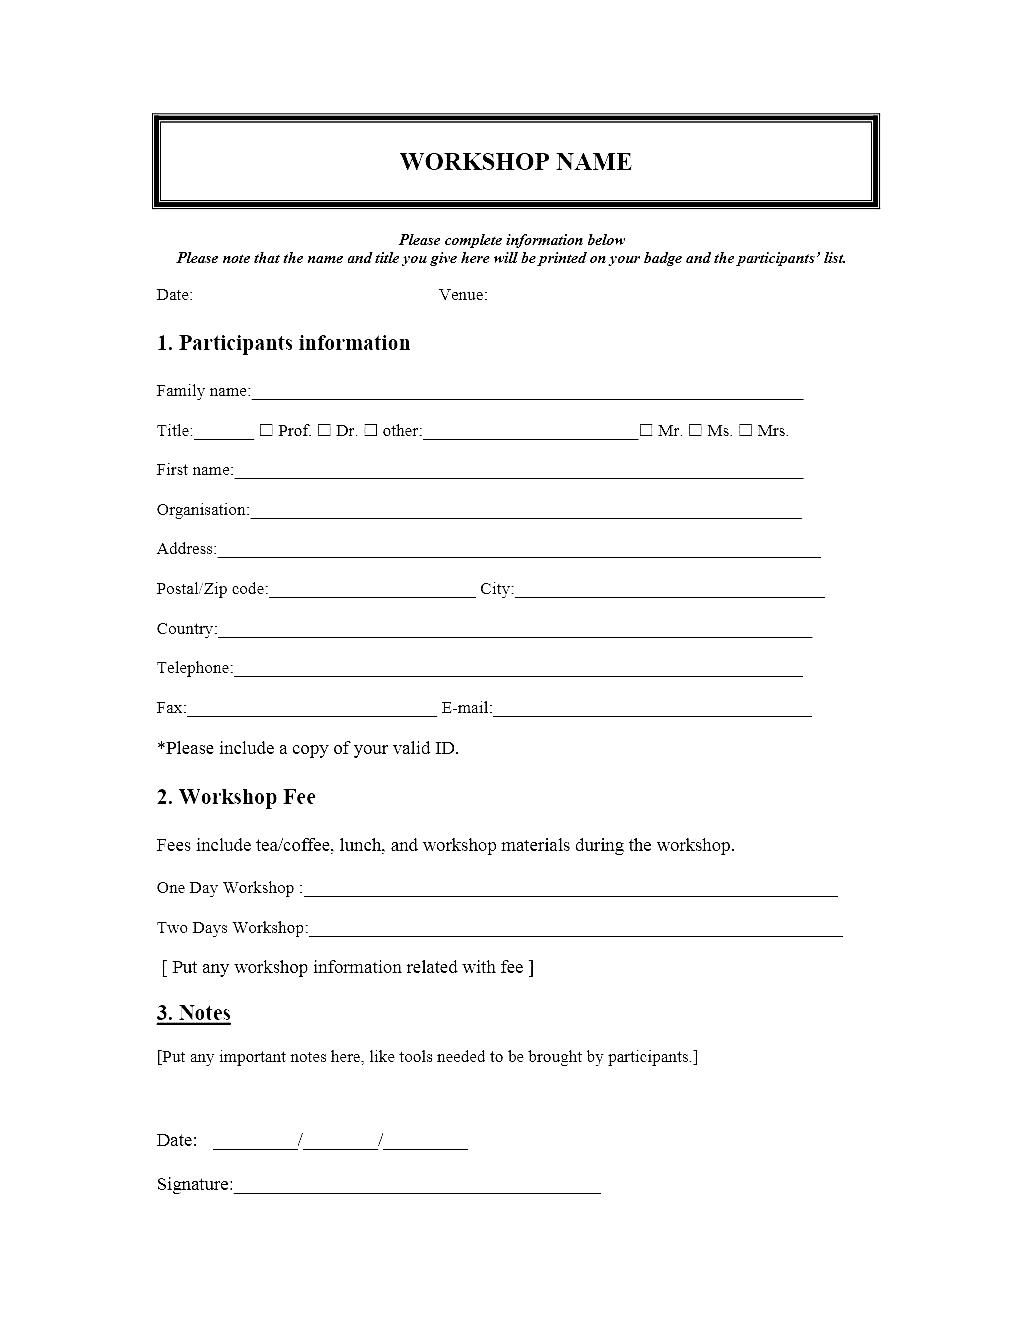 Event Registration Form Template Microsoft Word Besttemplate123 Event Registration Registration Form Online Registration Form